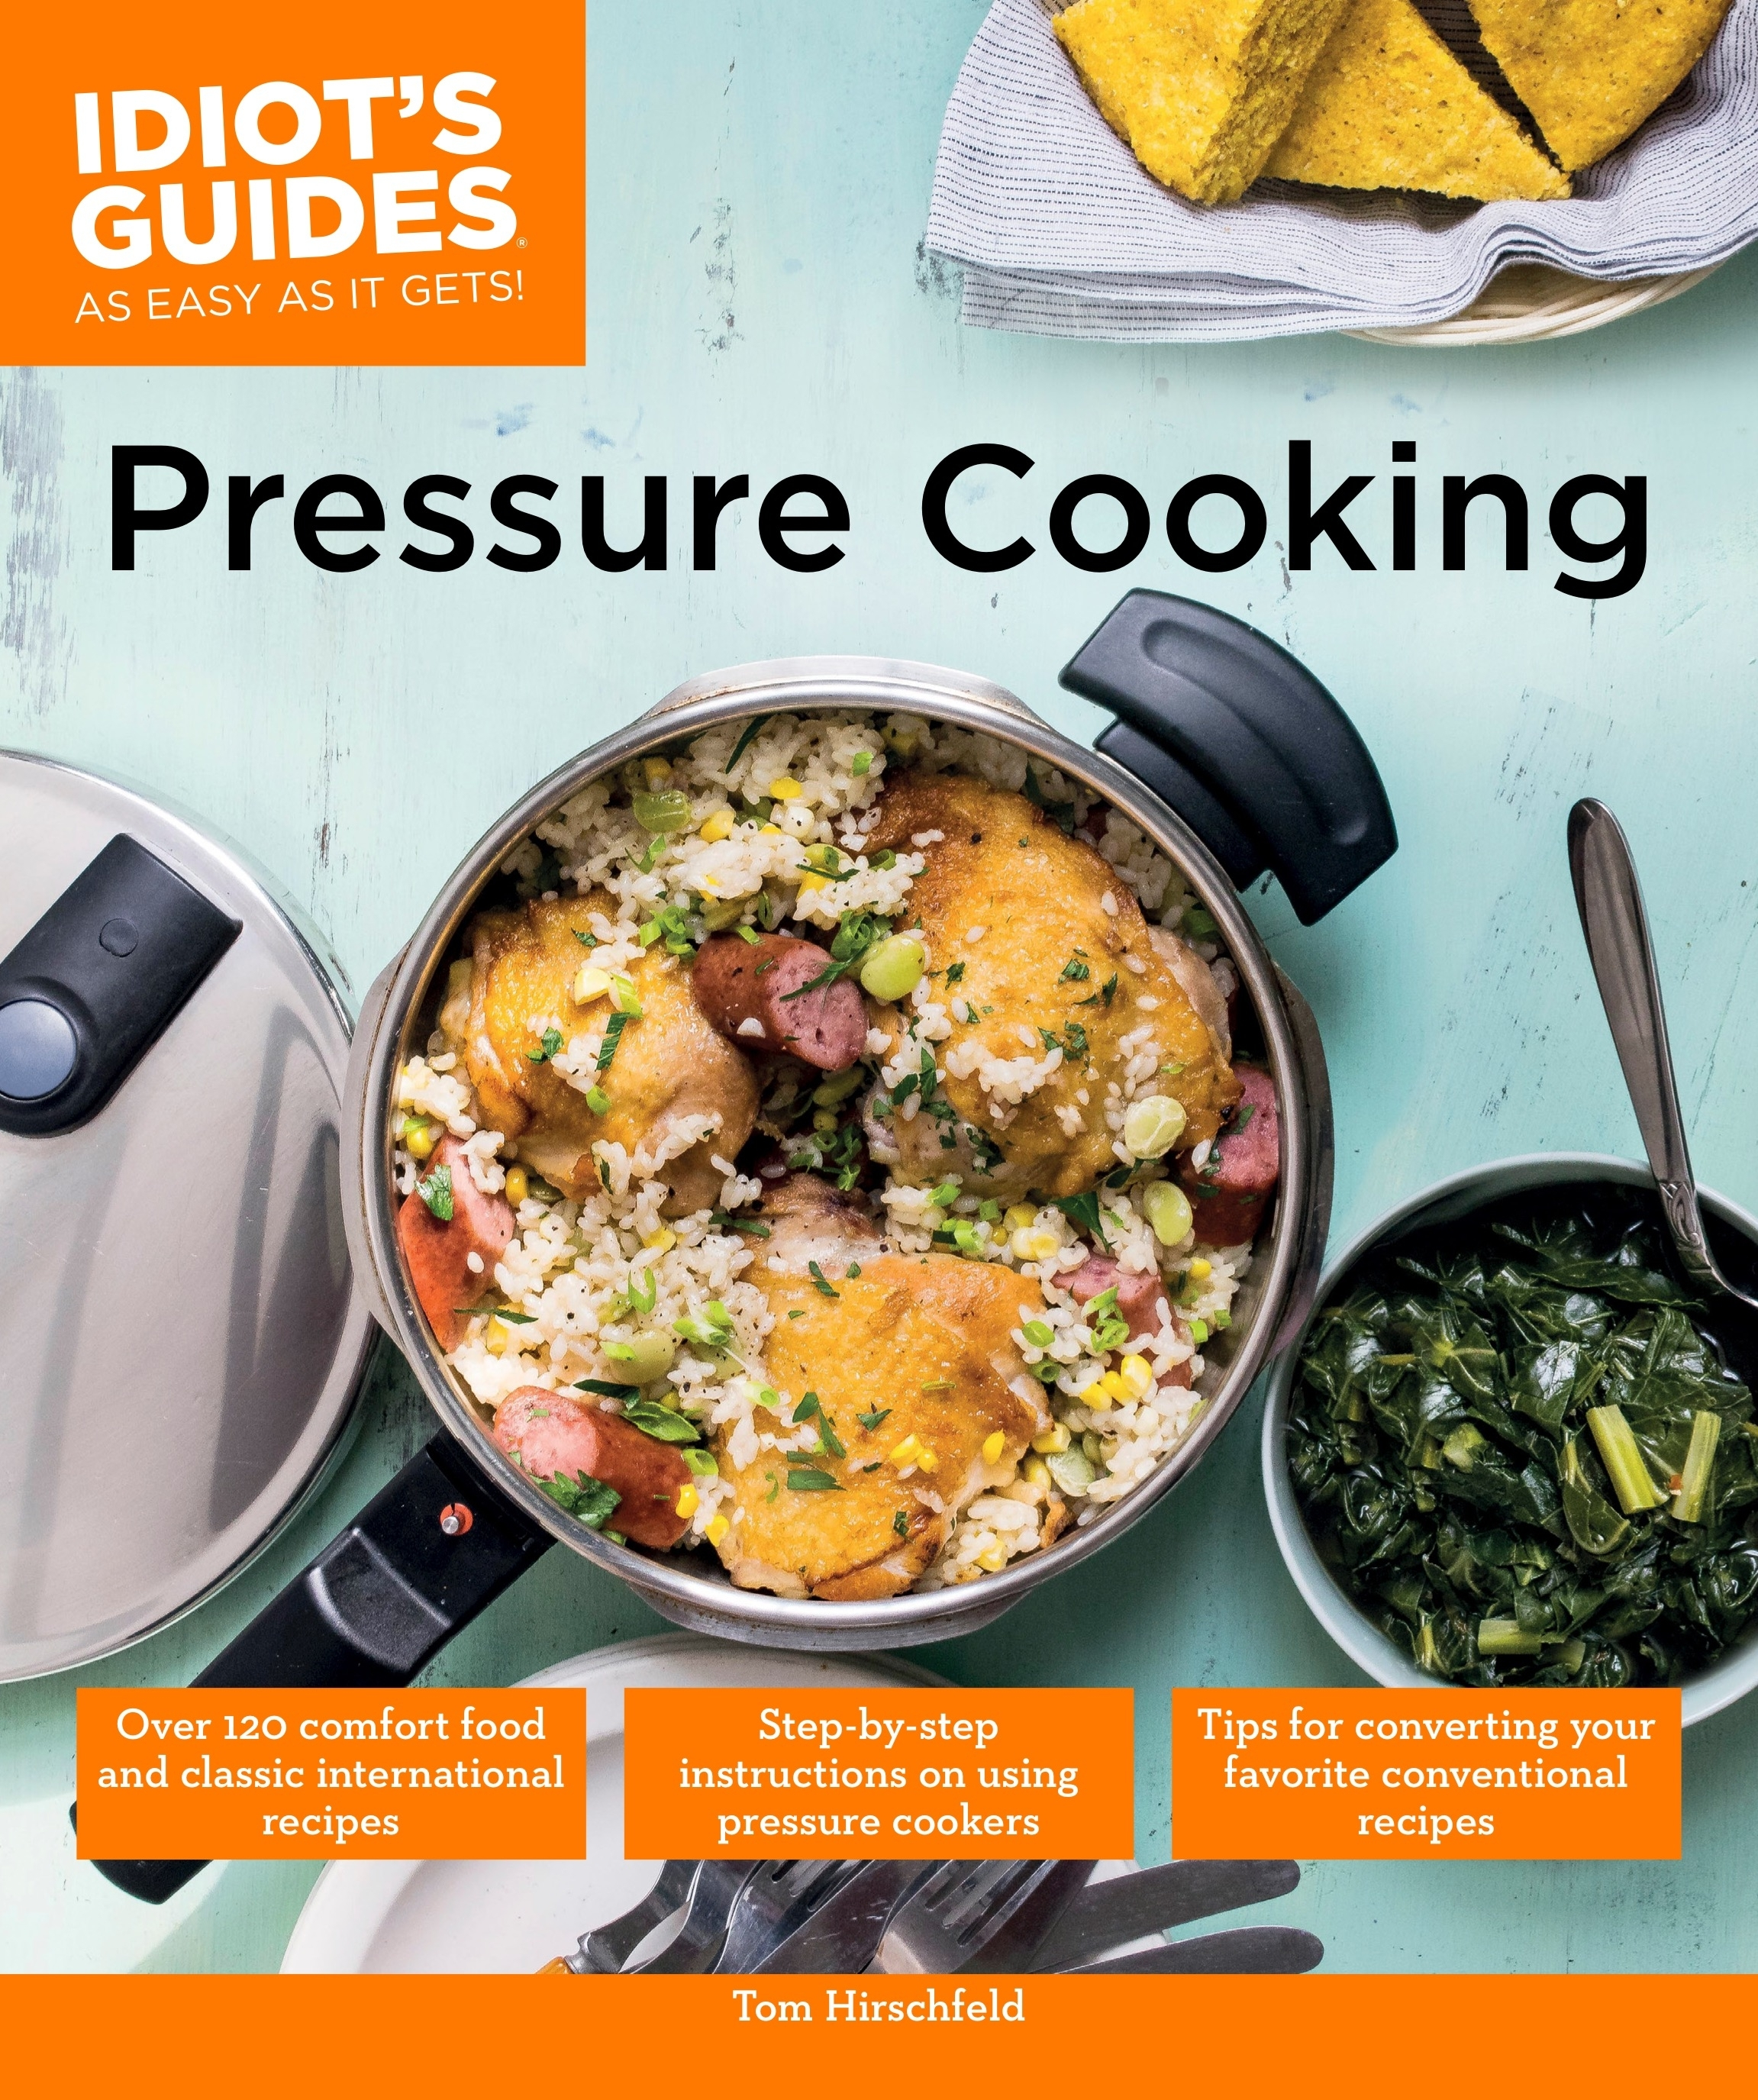 Idiots guides pressure cooking by tom hirschfeld penguin books hi res cover forumfinder Images